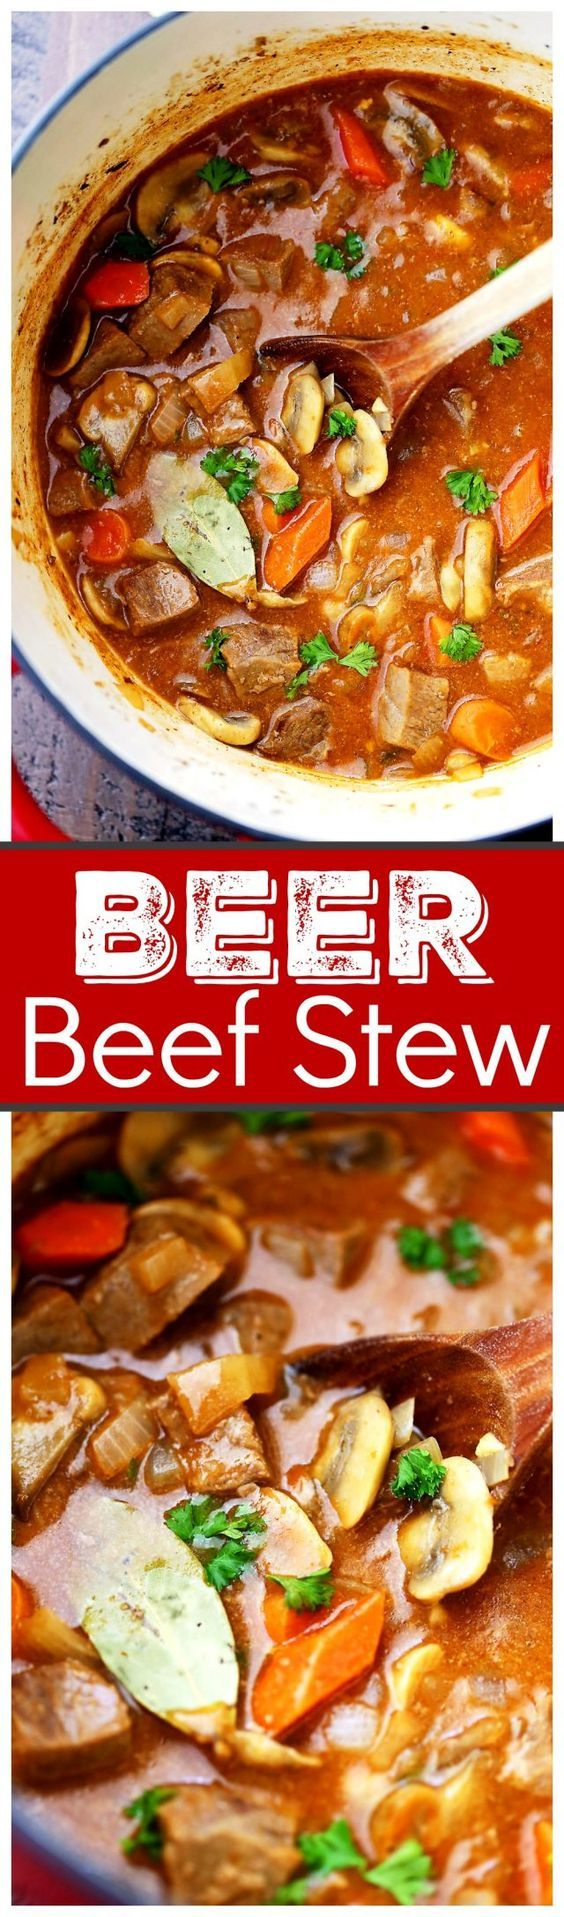 Super easy, but delicious and quick hearty stew cooked in a dutch oven with beef, mushrooms, carrots, and beer!